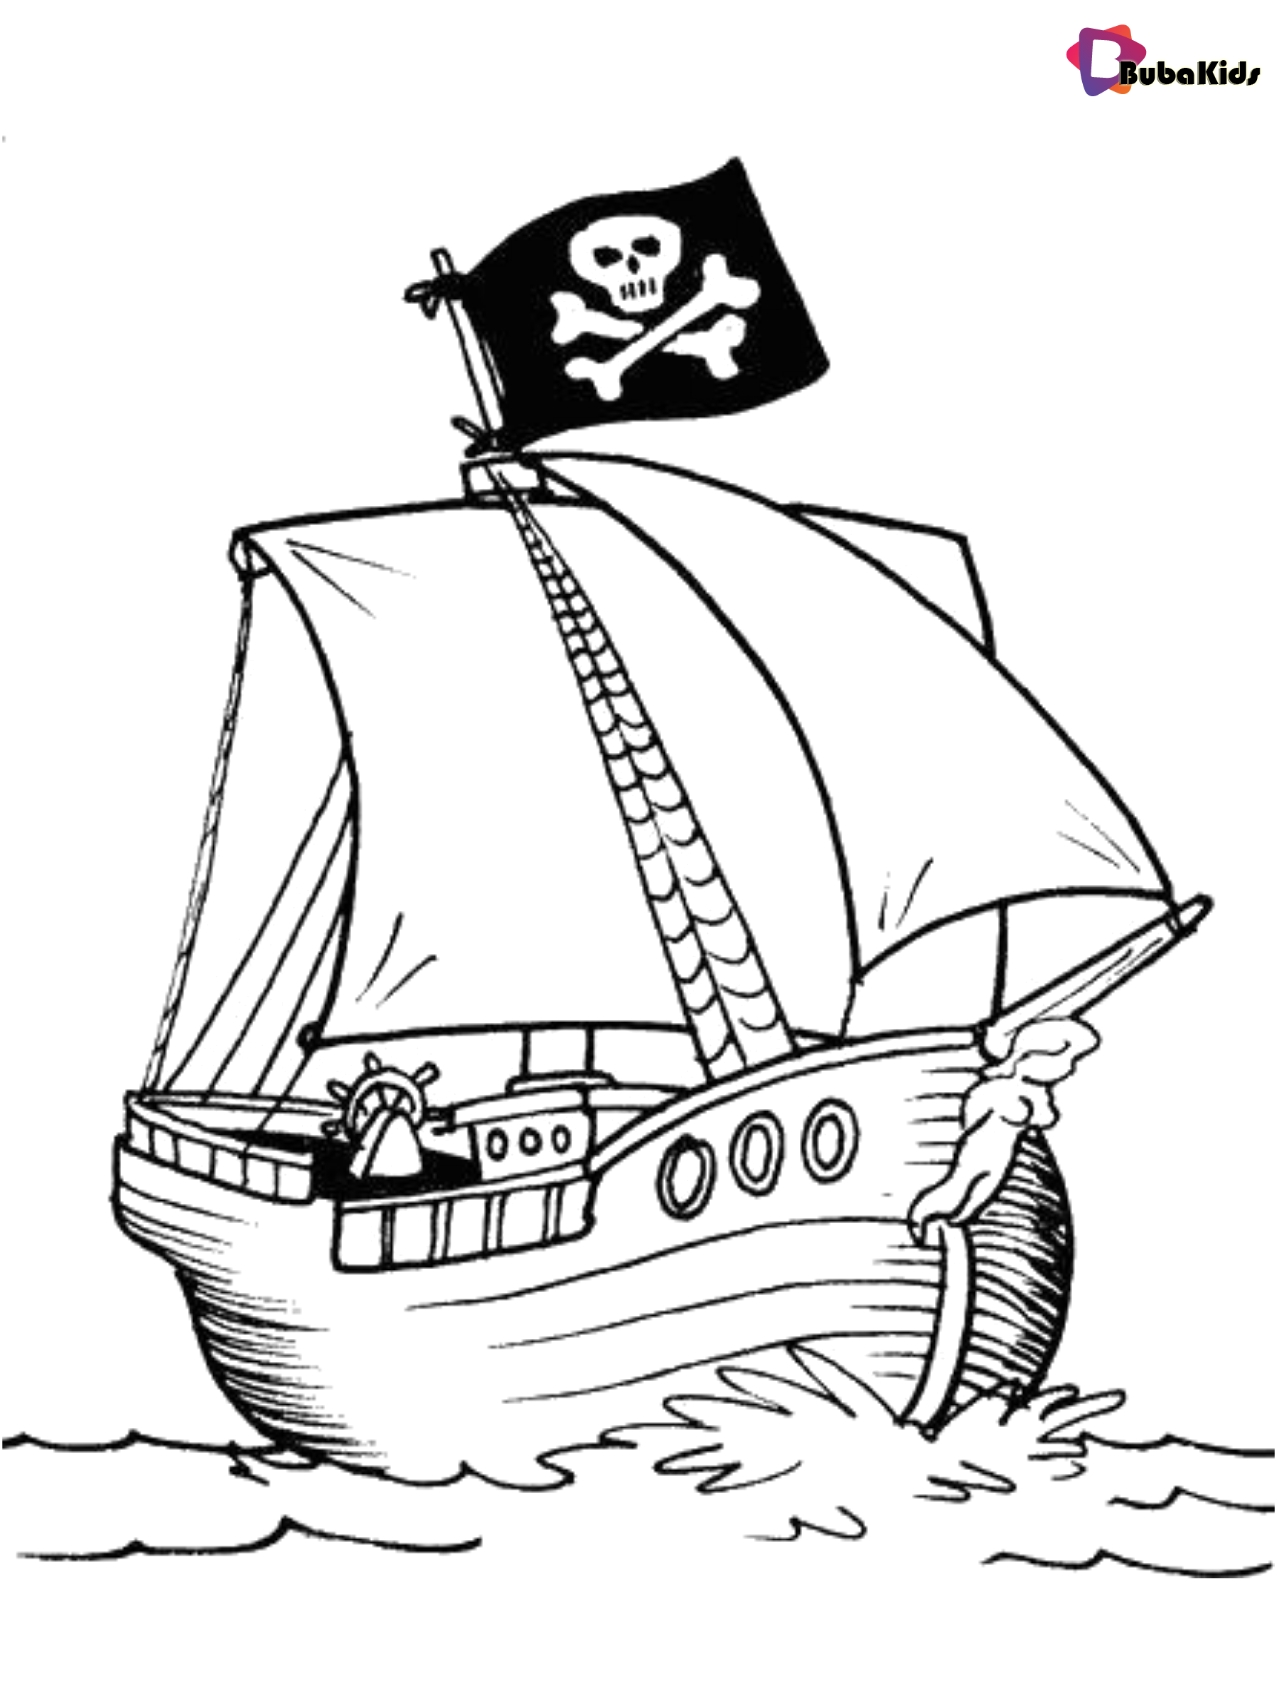 Coloring picture pirate ship free printable Wallpaper